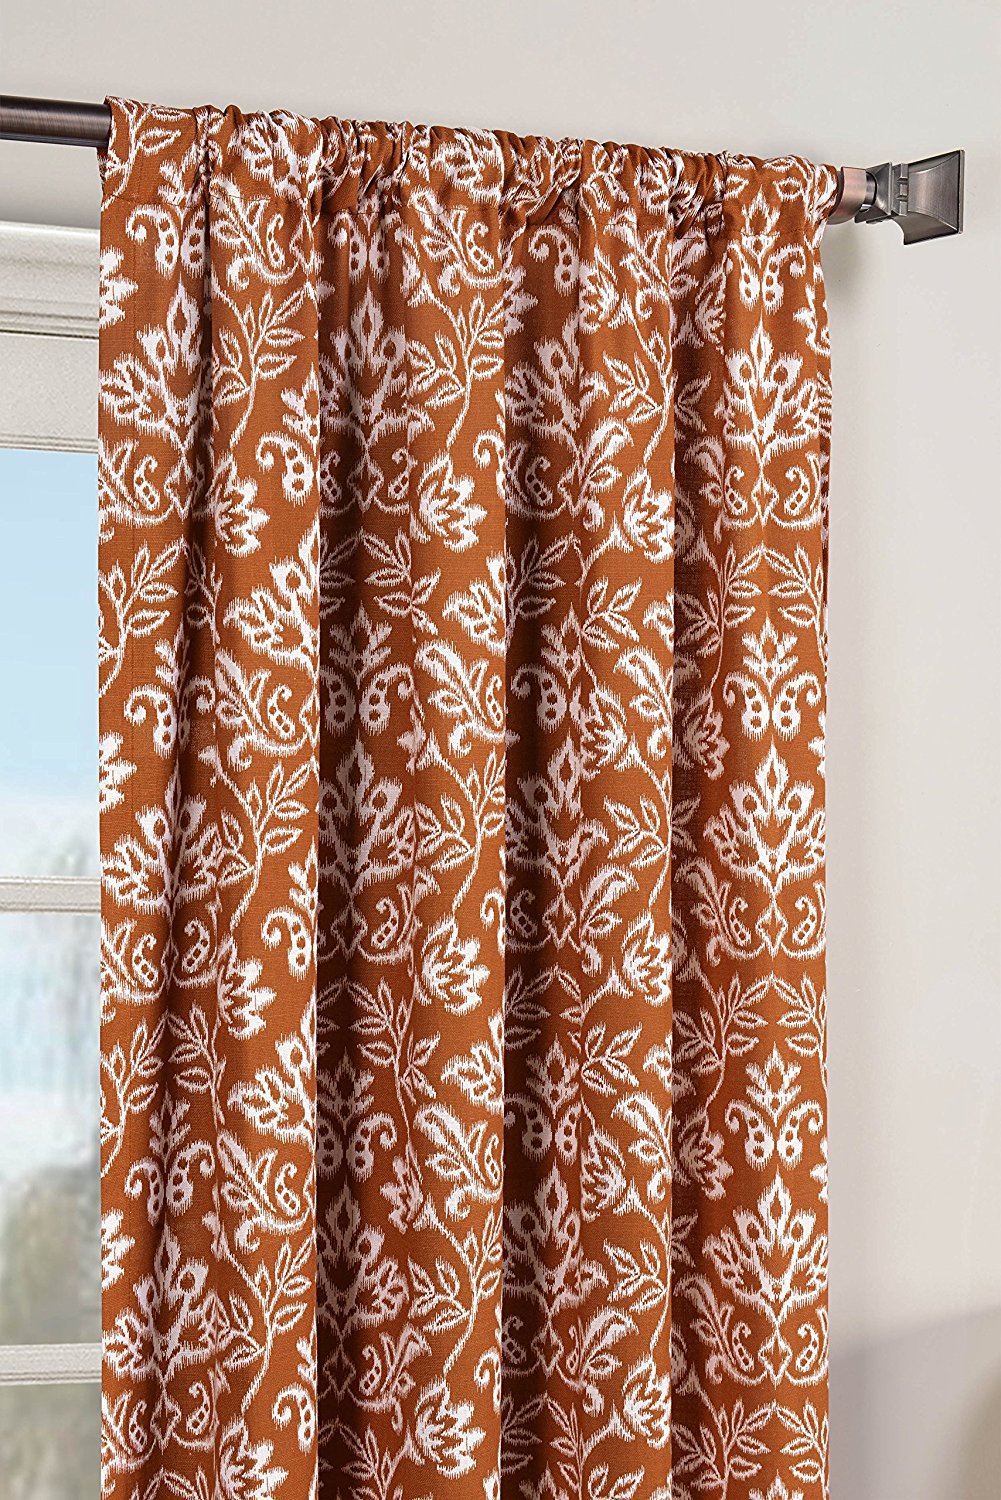 Window Elements Valencia Printed Cotton Extra Wide 104 x 84 in. Rod Pocket Curtain Panel Pair, Rust